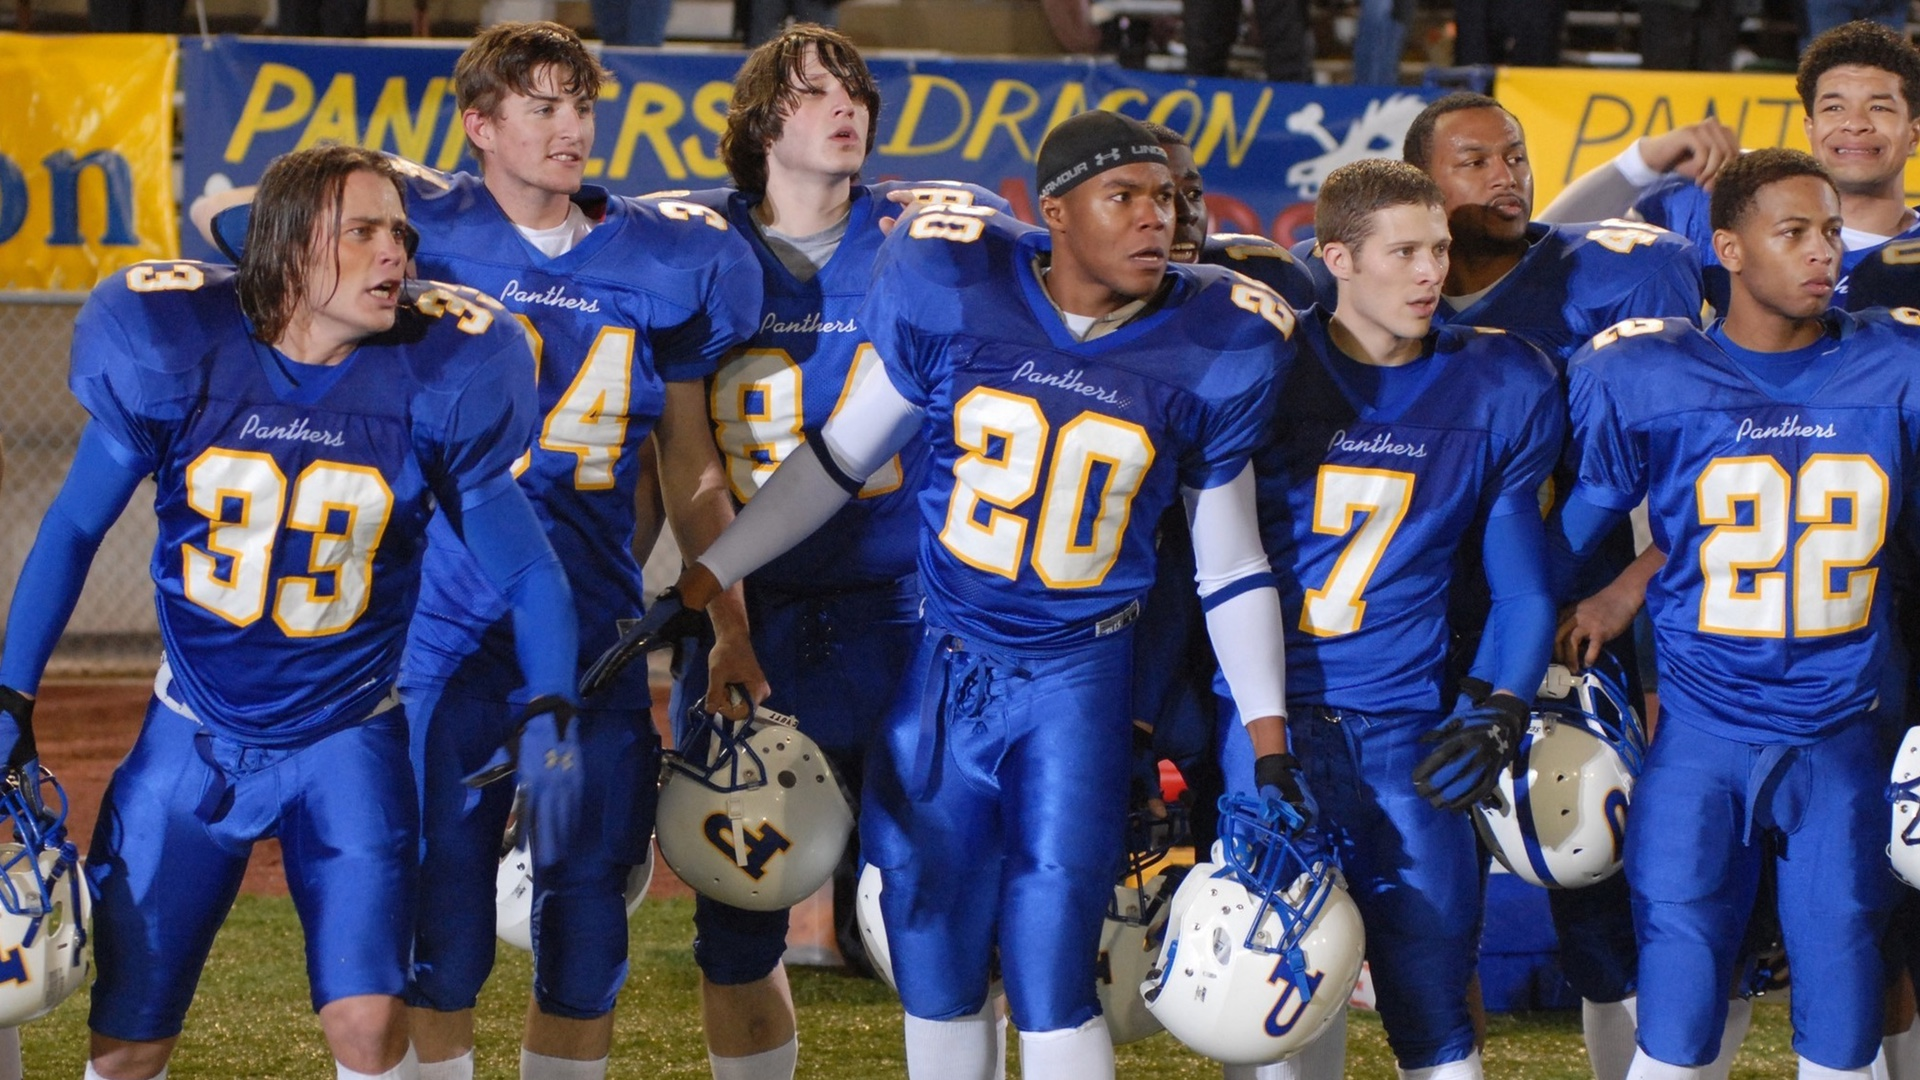 There S A New Friday Night Lights Movie Coming From Director David